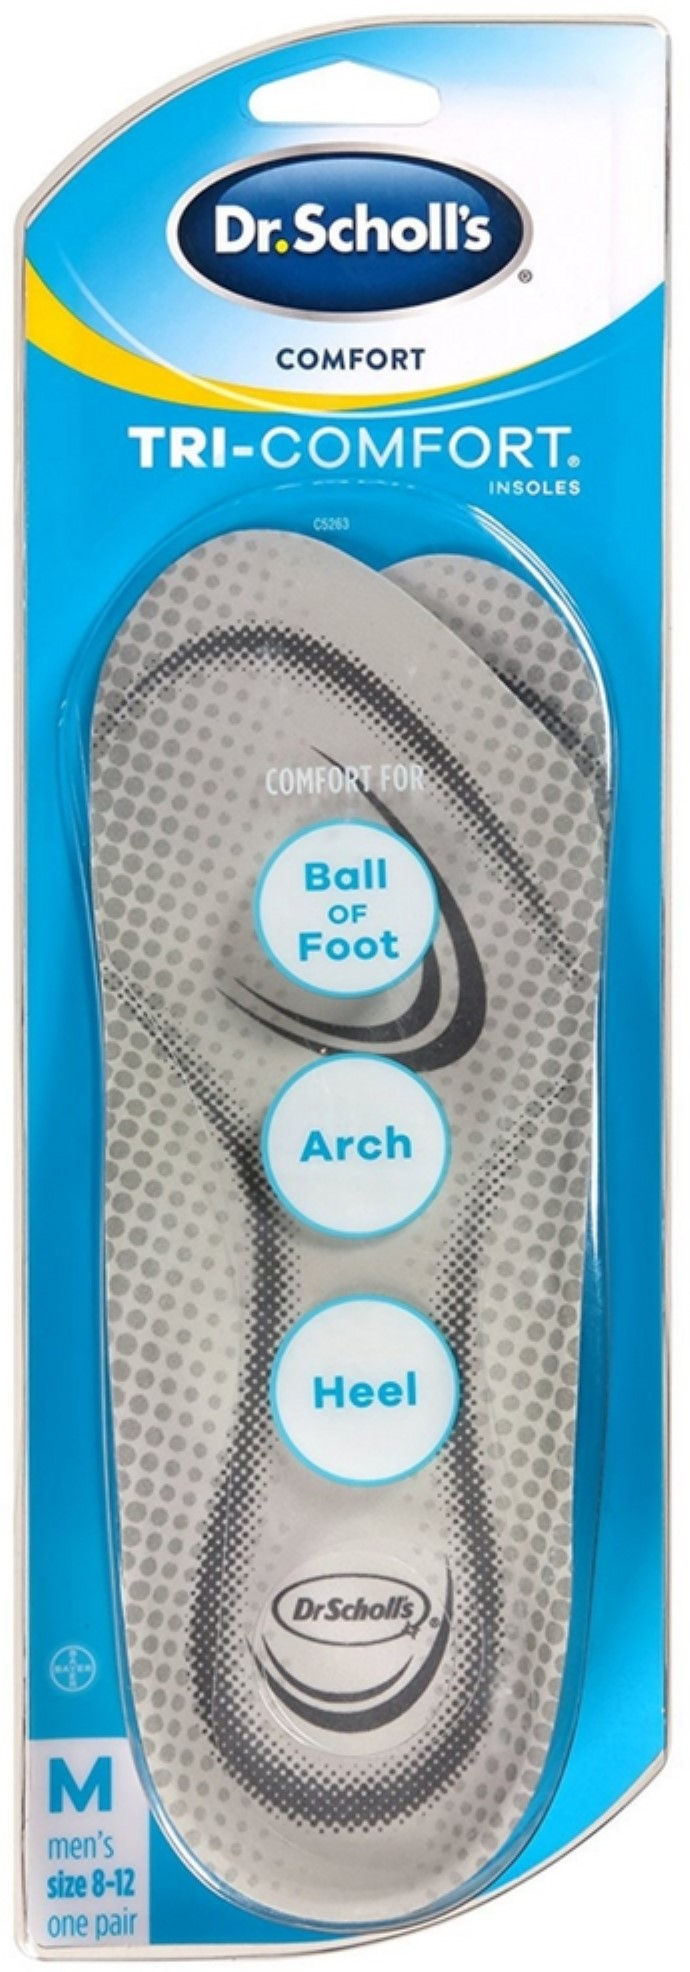 2 Pack Dr. Scholl's Tri-Comfort Men, Size 8-12 1 ea by